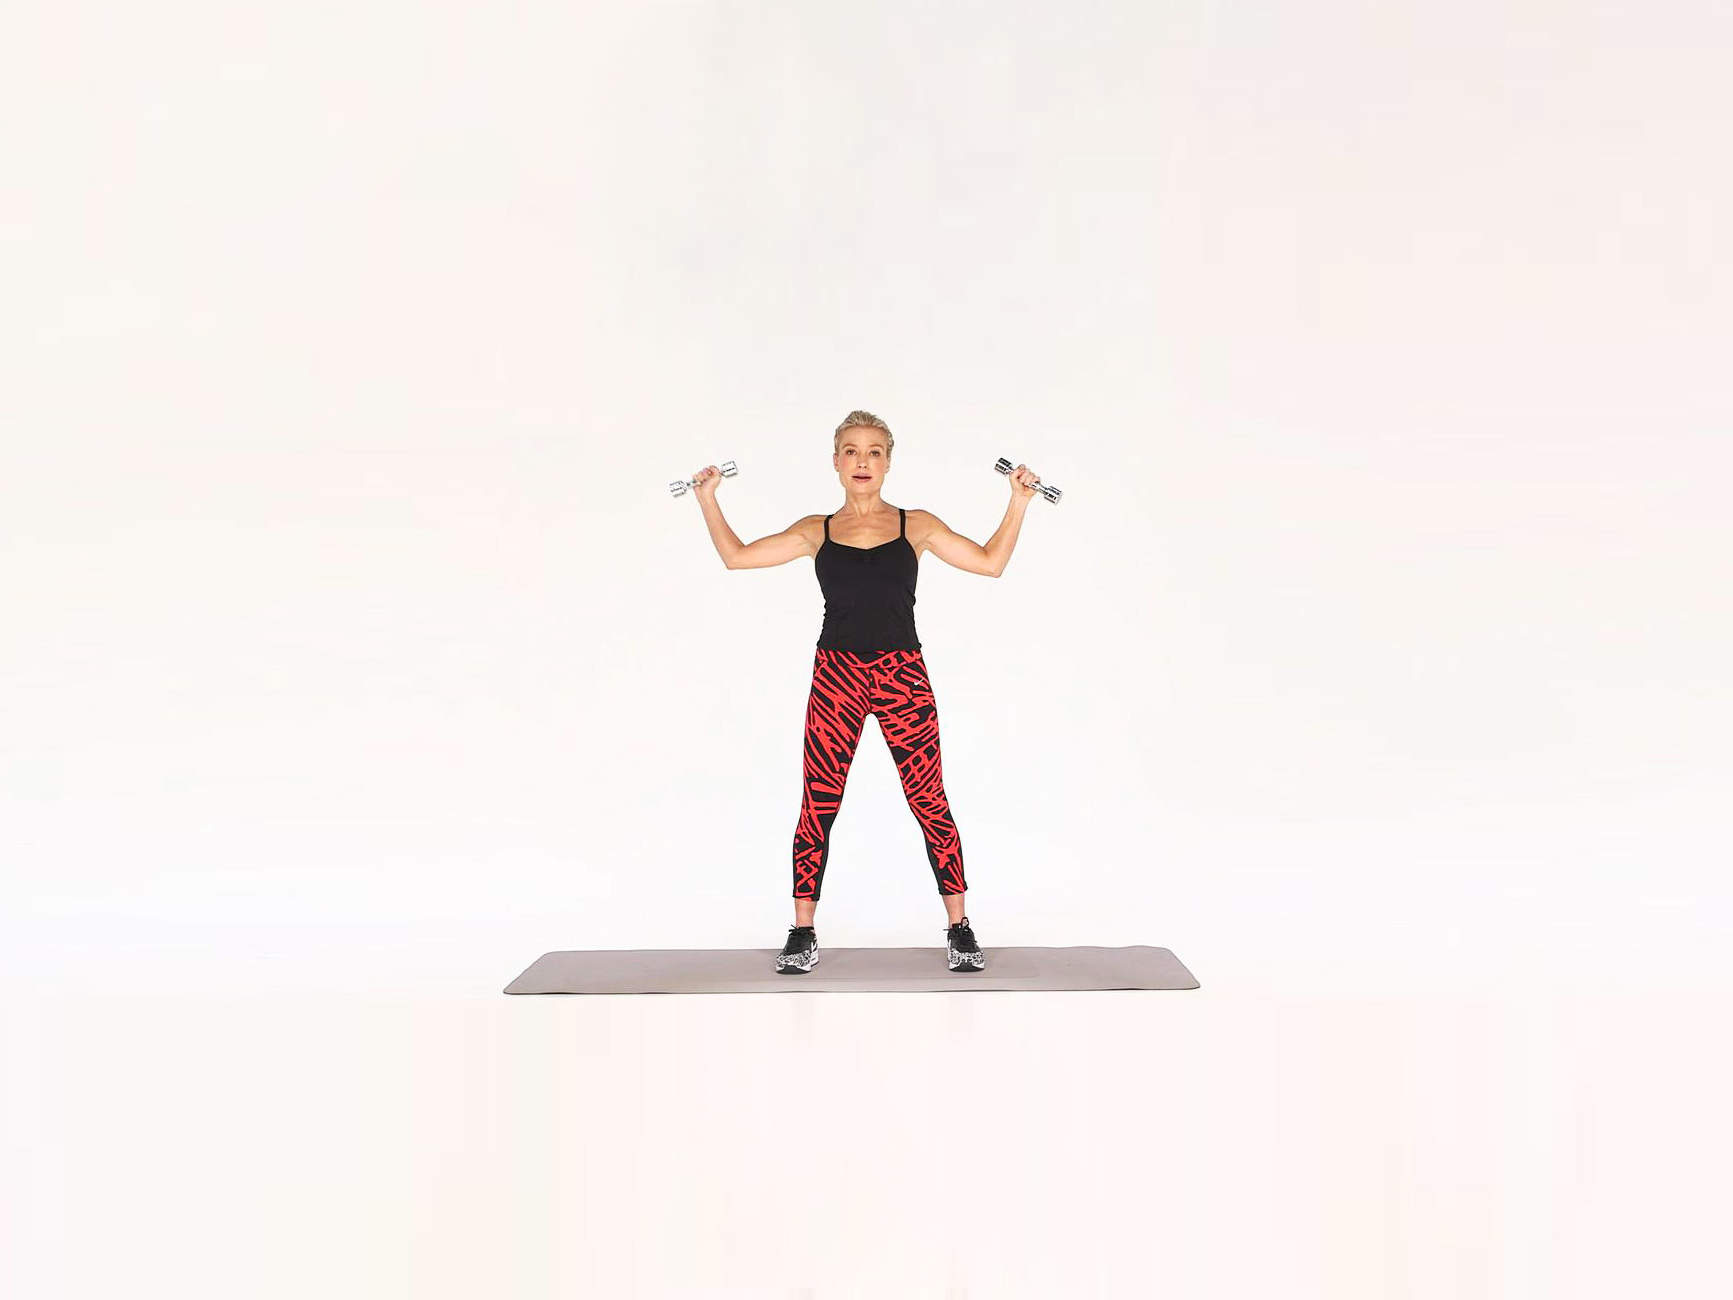 tracy-anderson-tone-triceps-video